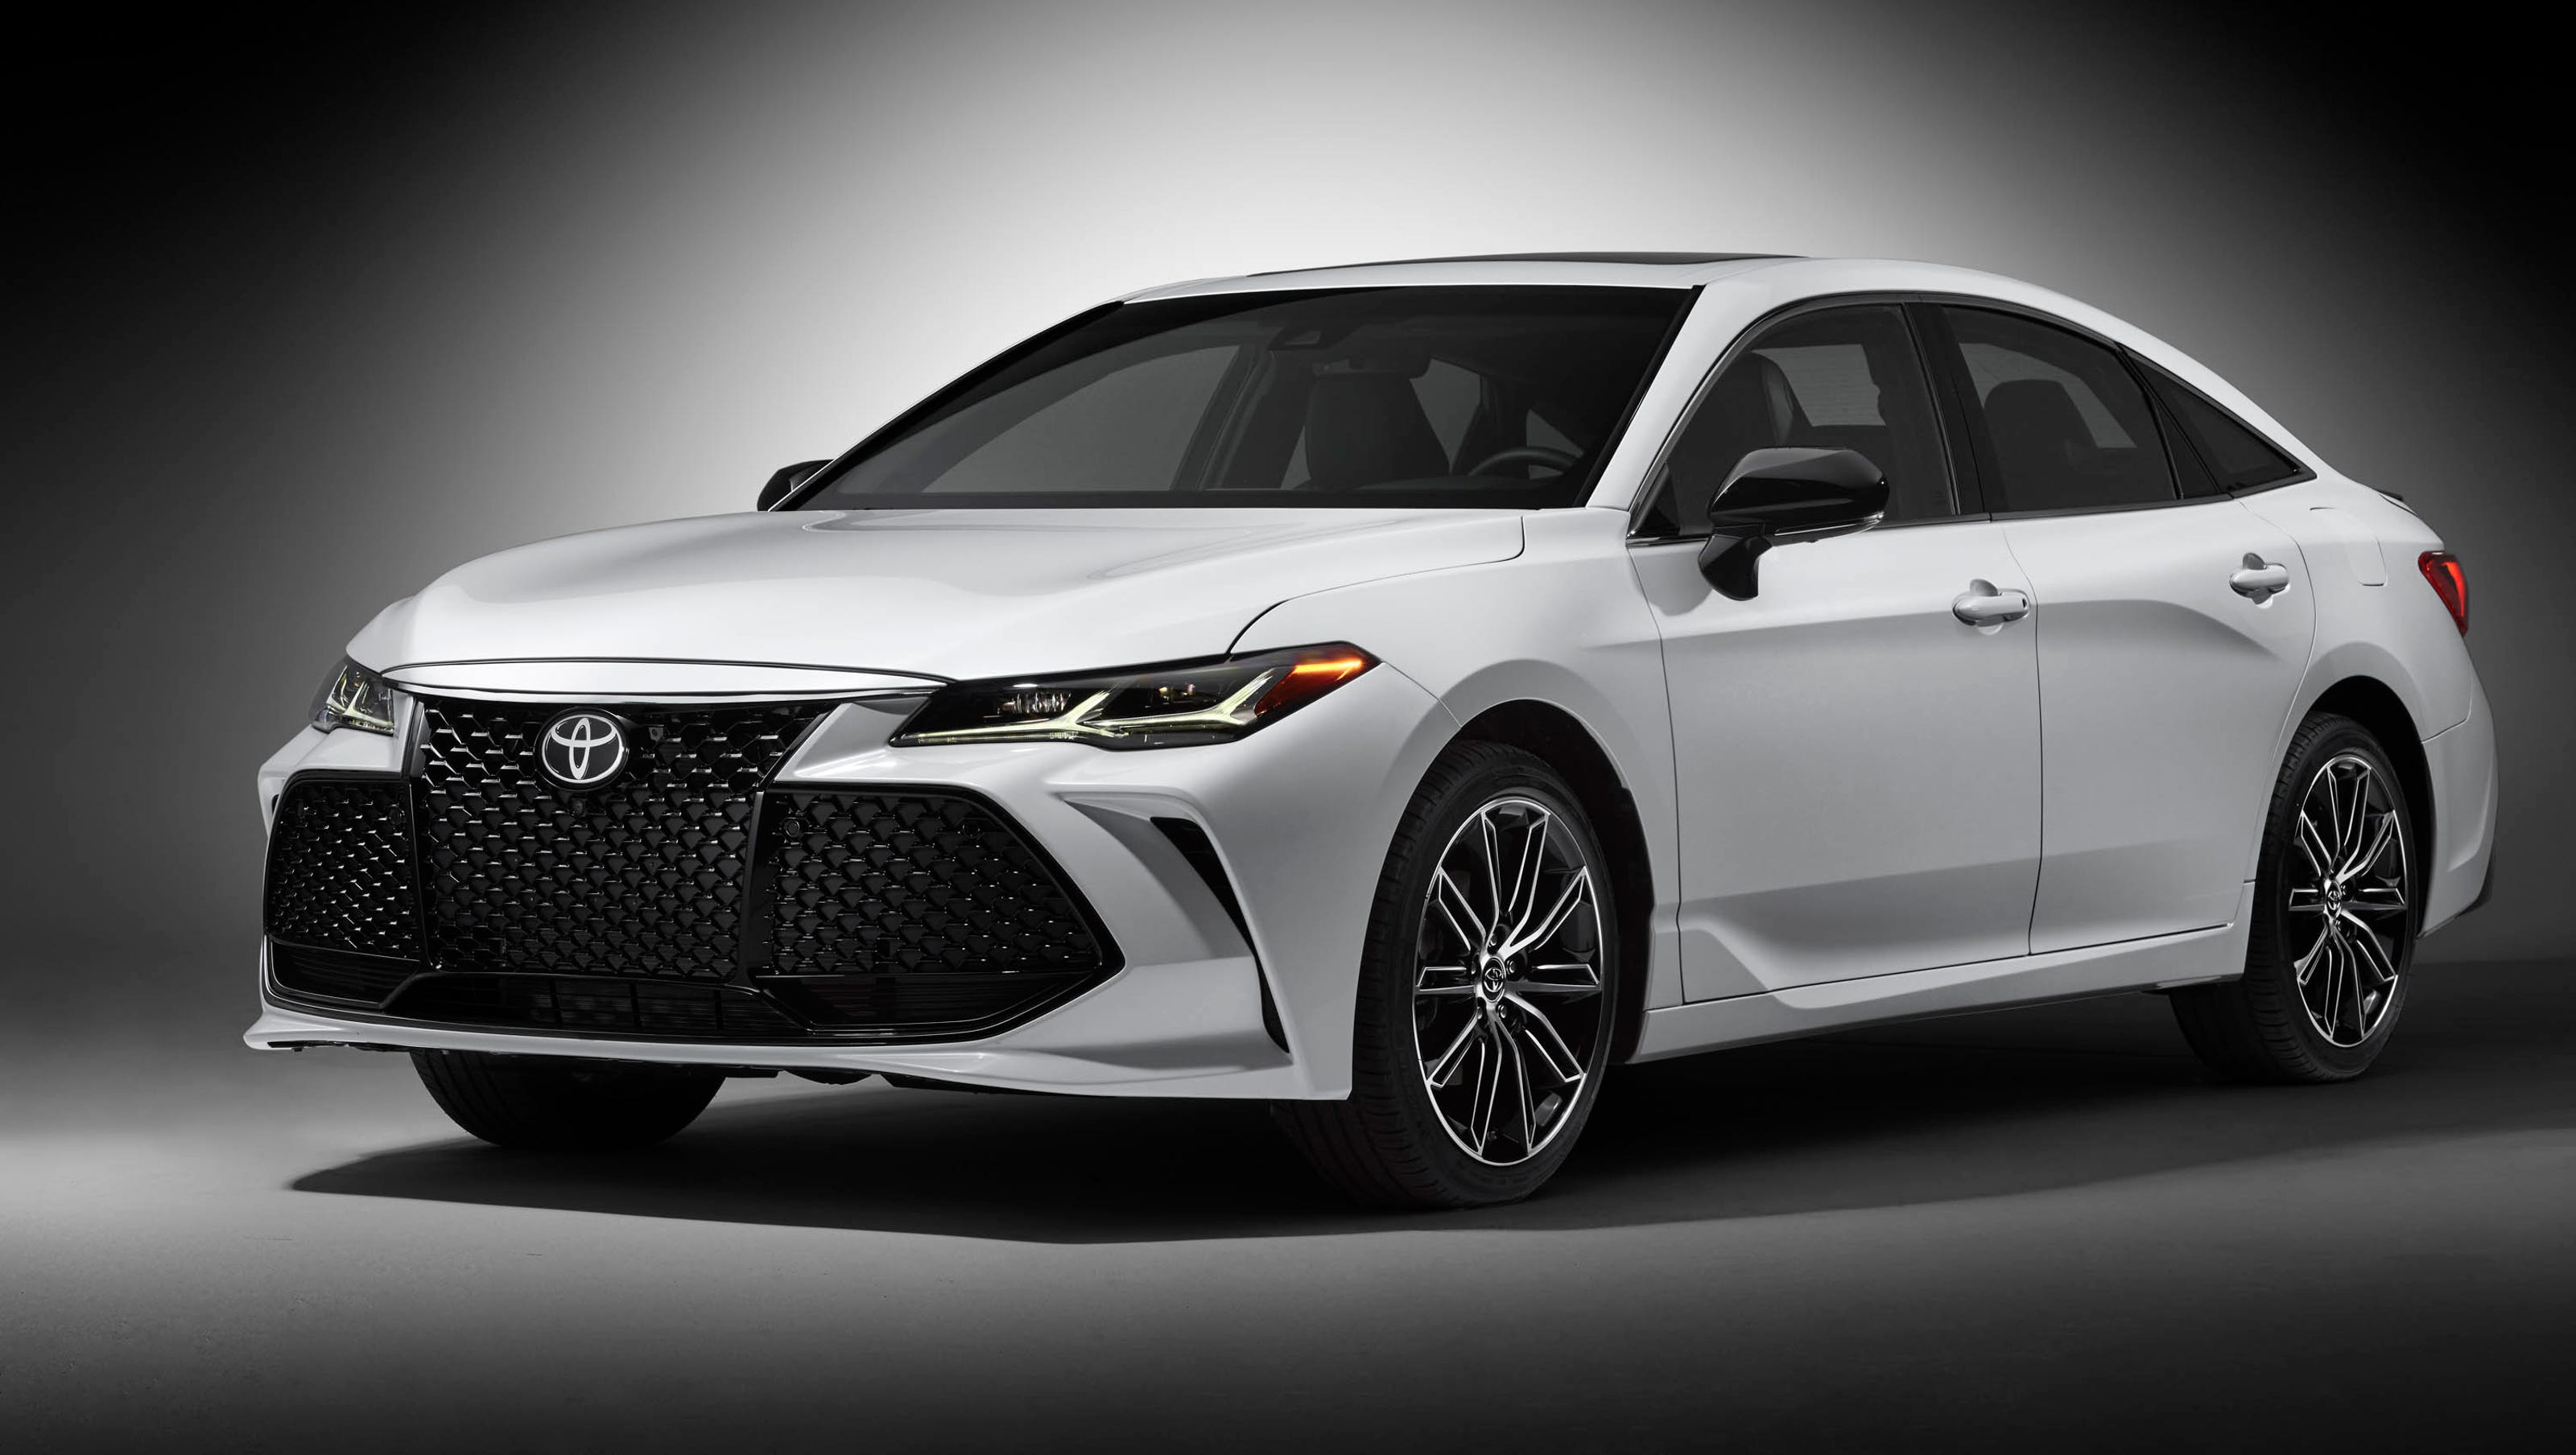 Detroit Auto Show 2019 Toyota Avalon looks good but faces tough market